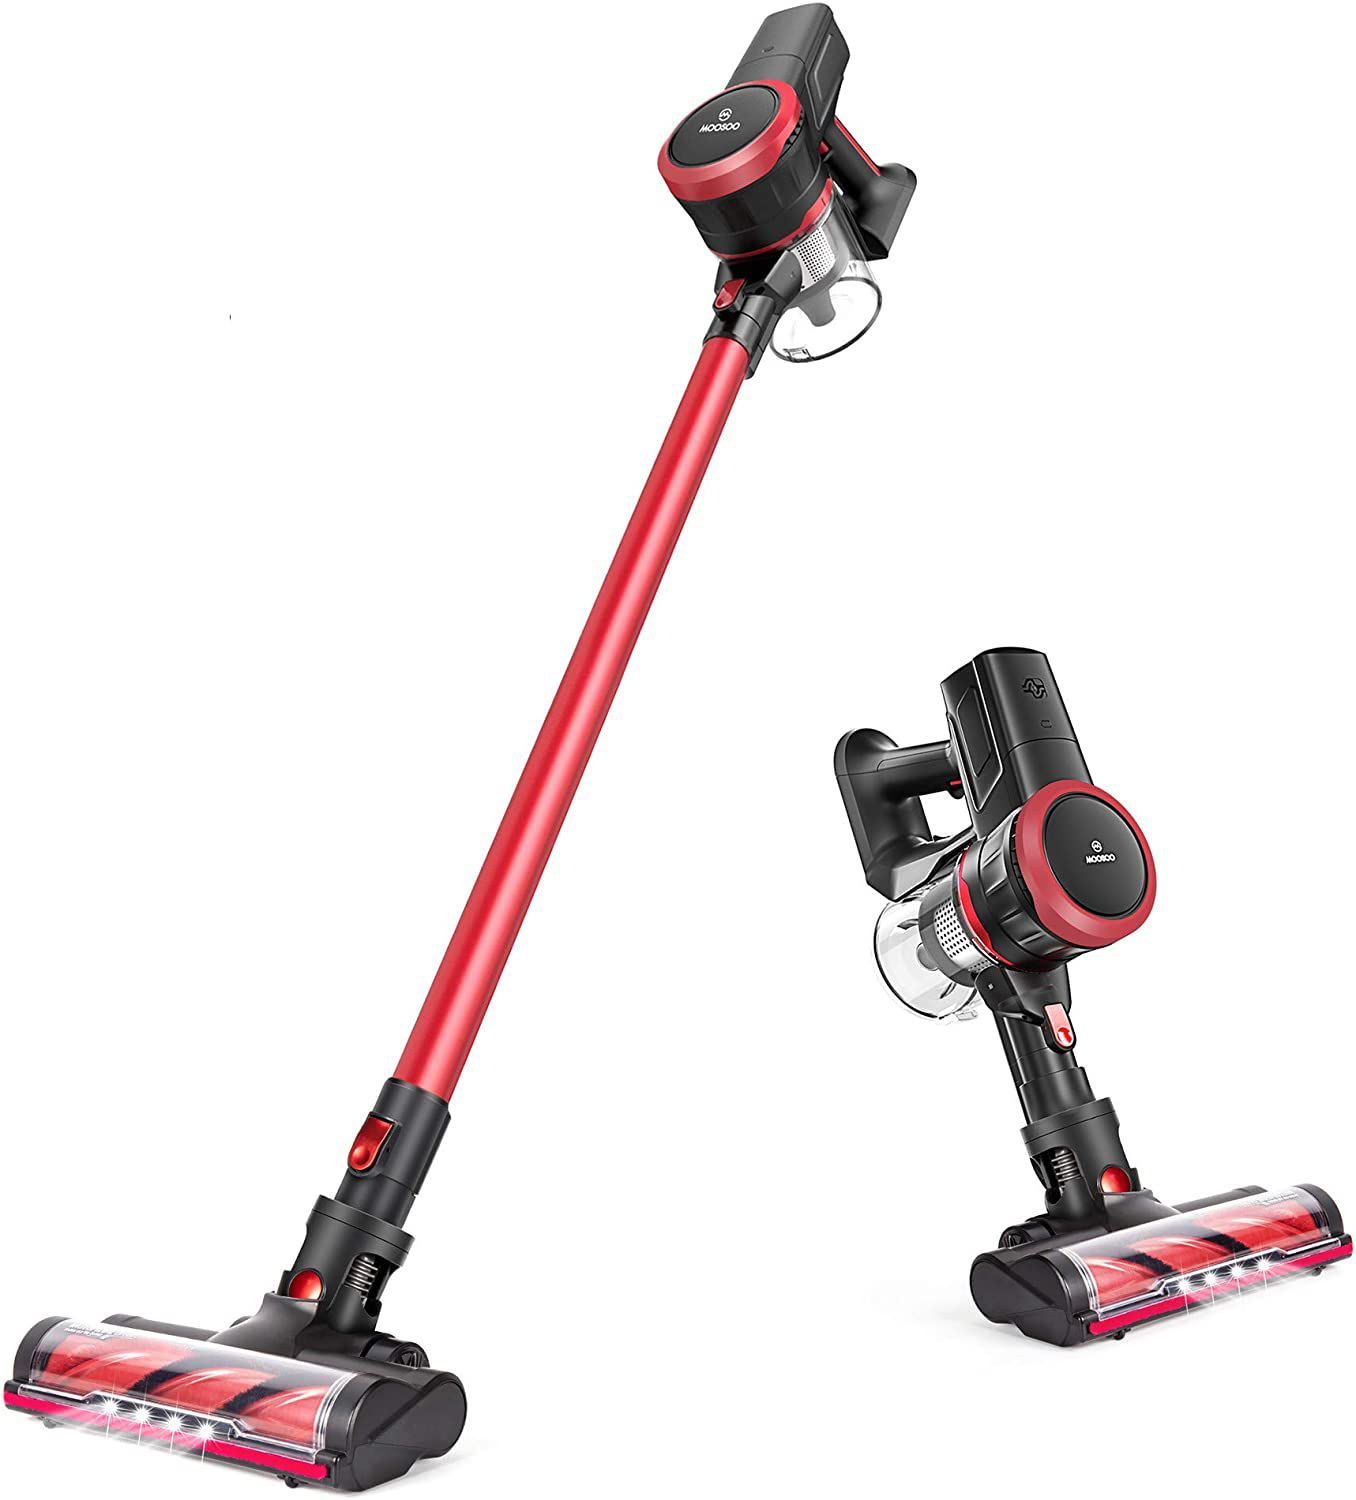 Powerful Ultra Suction for Carpet Hard Floor Tineco A11 Tango Cordless Lightweight Stick Handheld Vacuum Cleaner